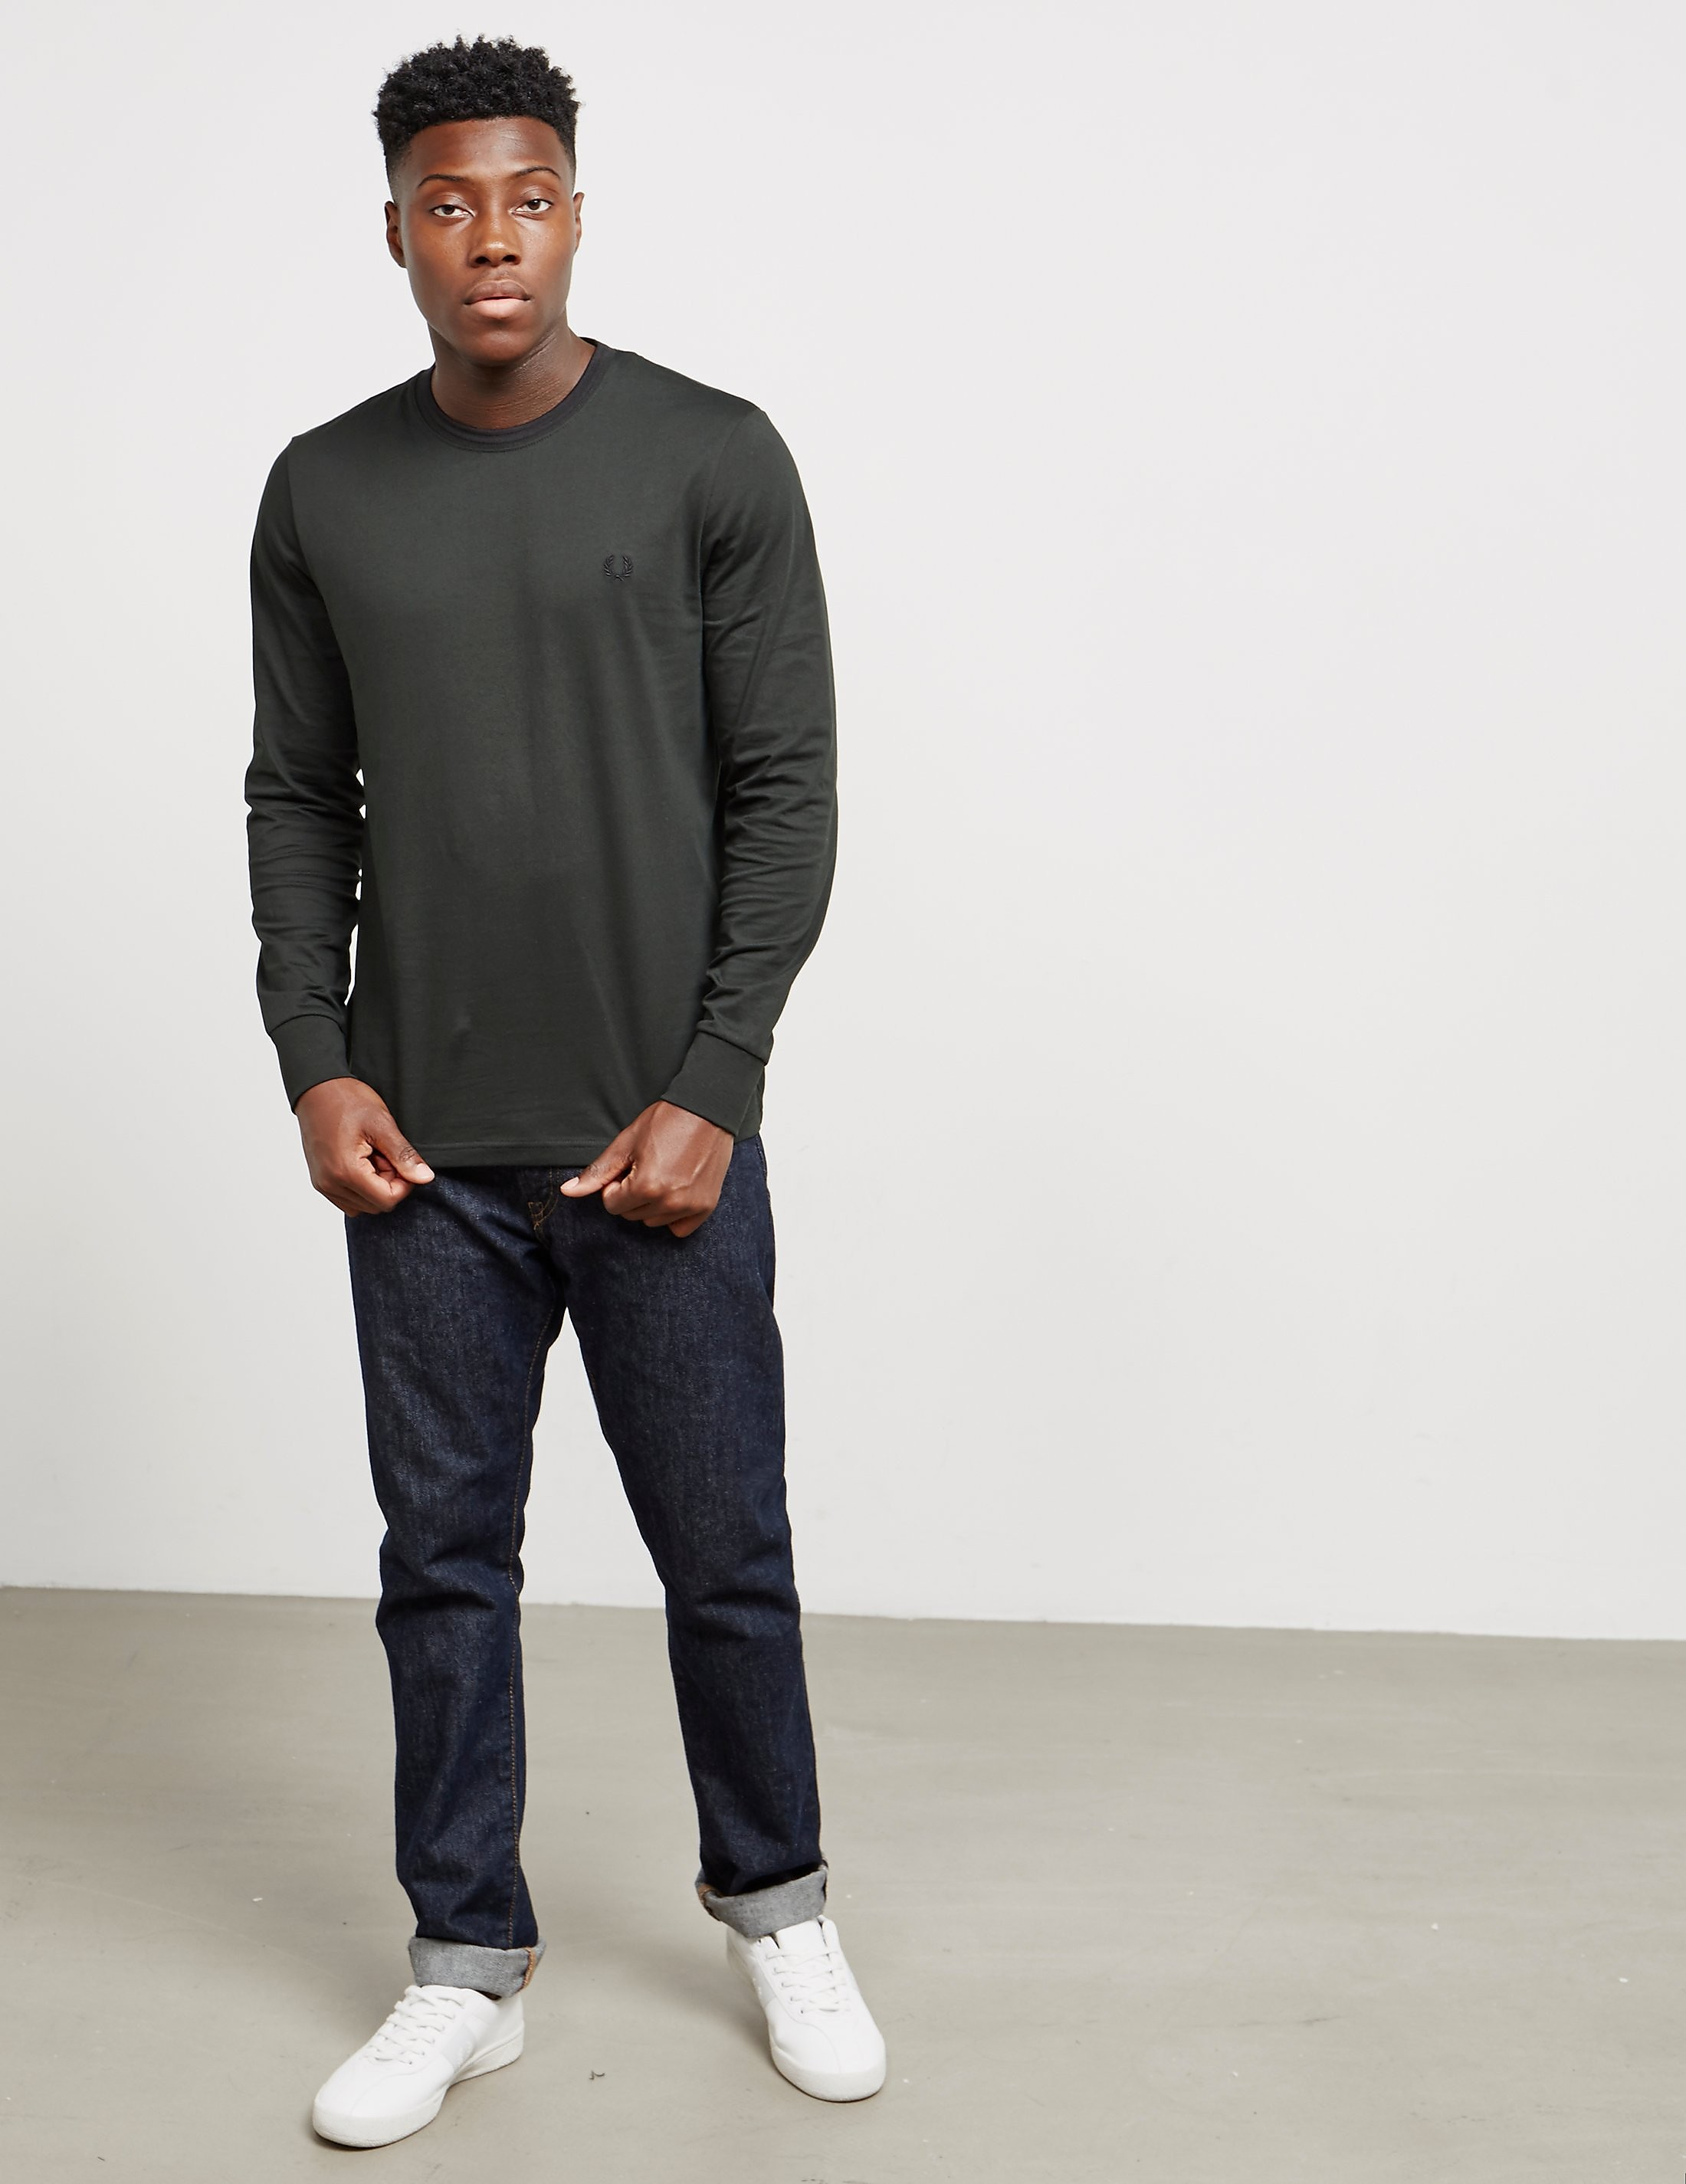 Fred Perry Tipped Long Sleeve T-Shirt - Exclusive